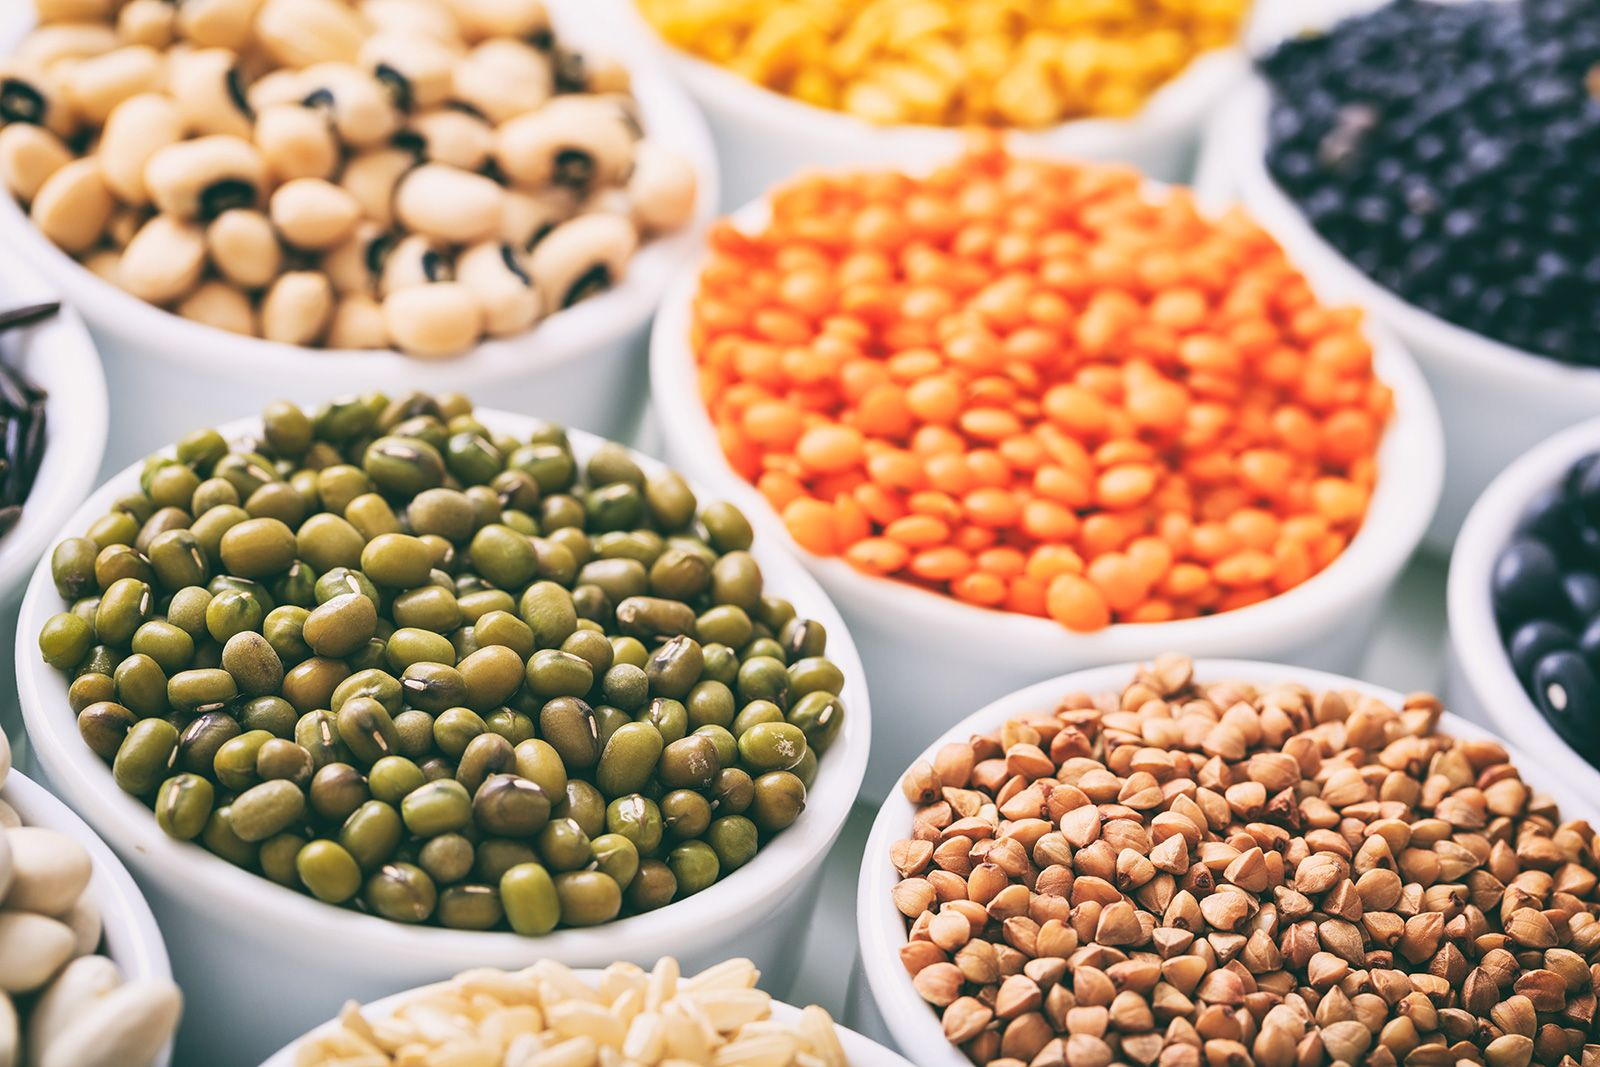 LECTINS: BENEFICIAL OR HARMFUL?